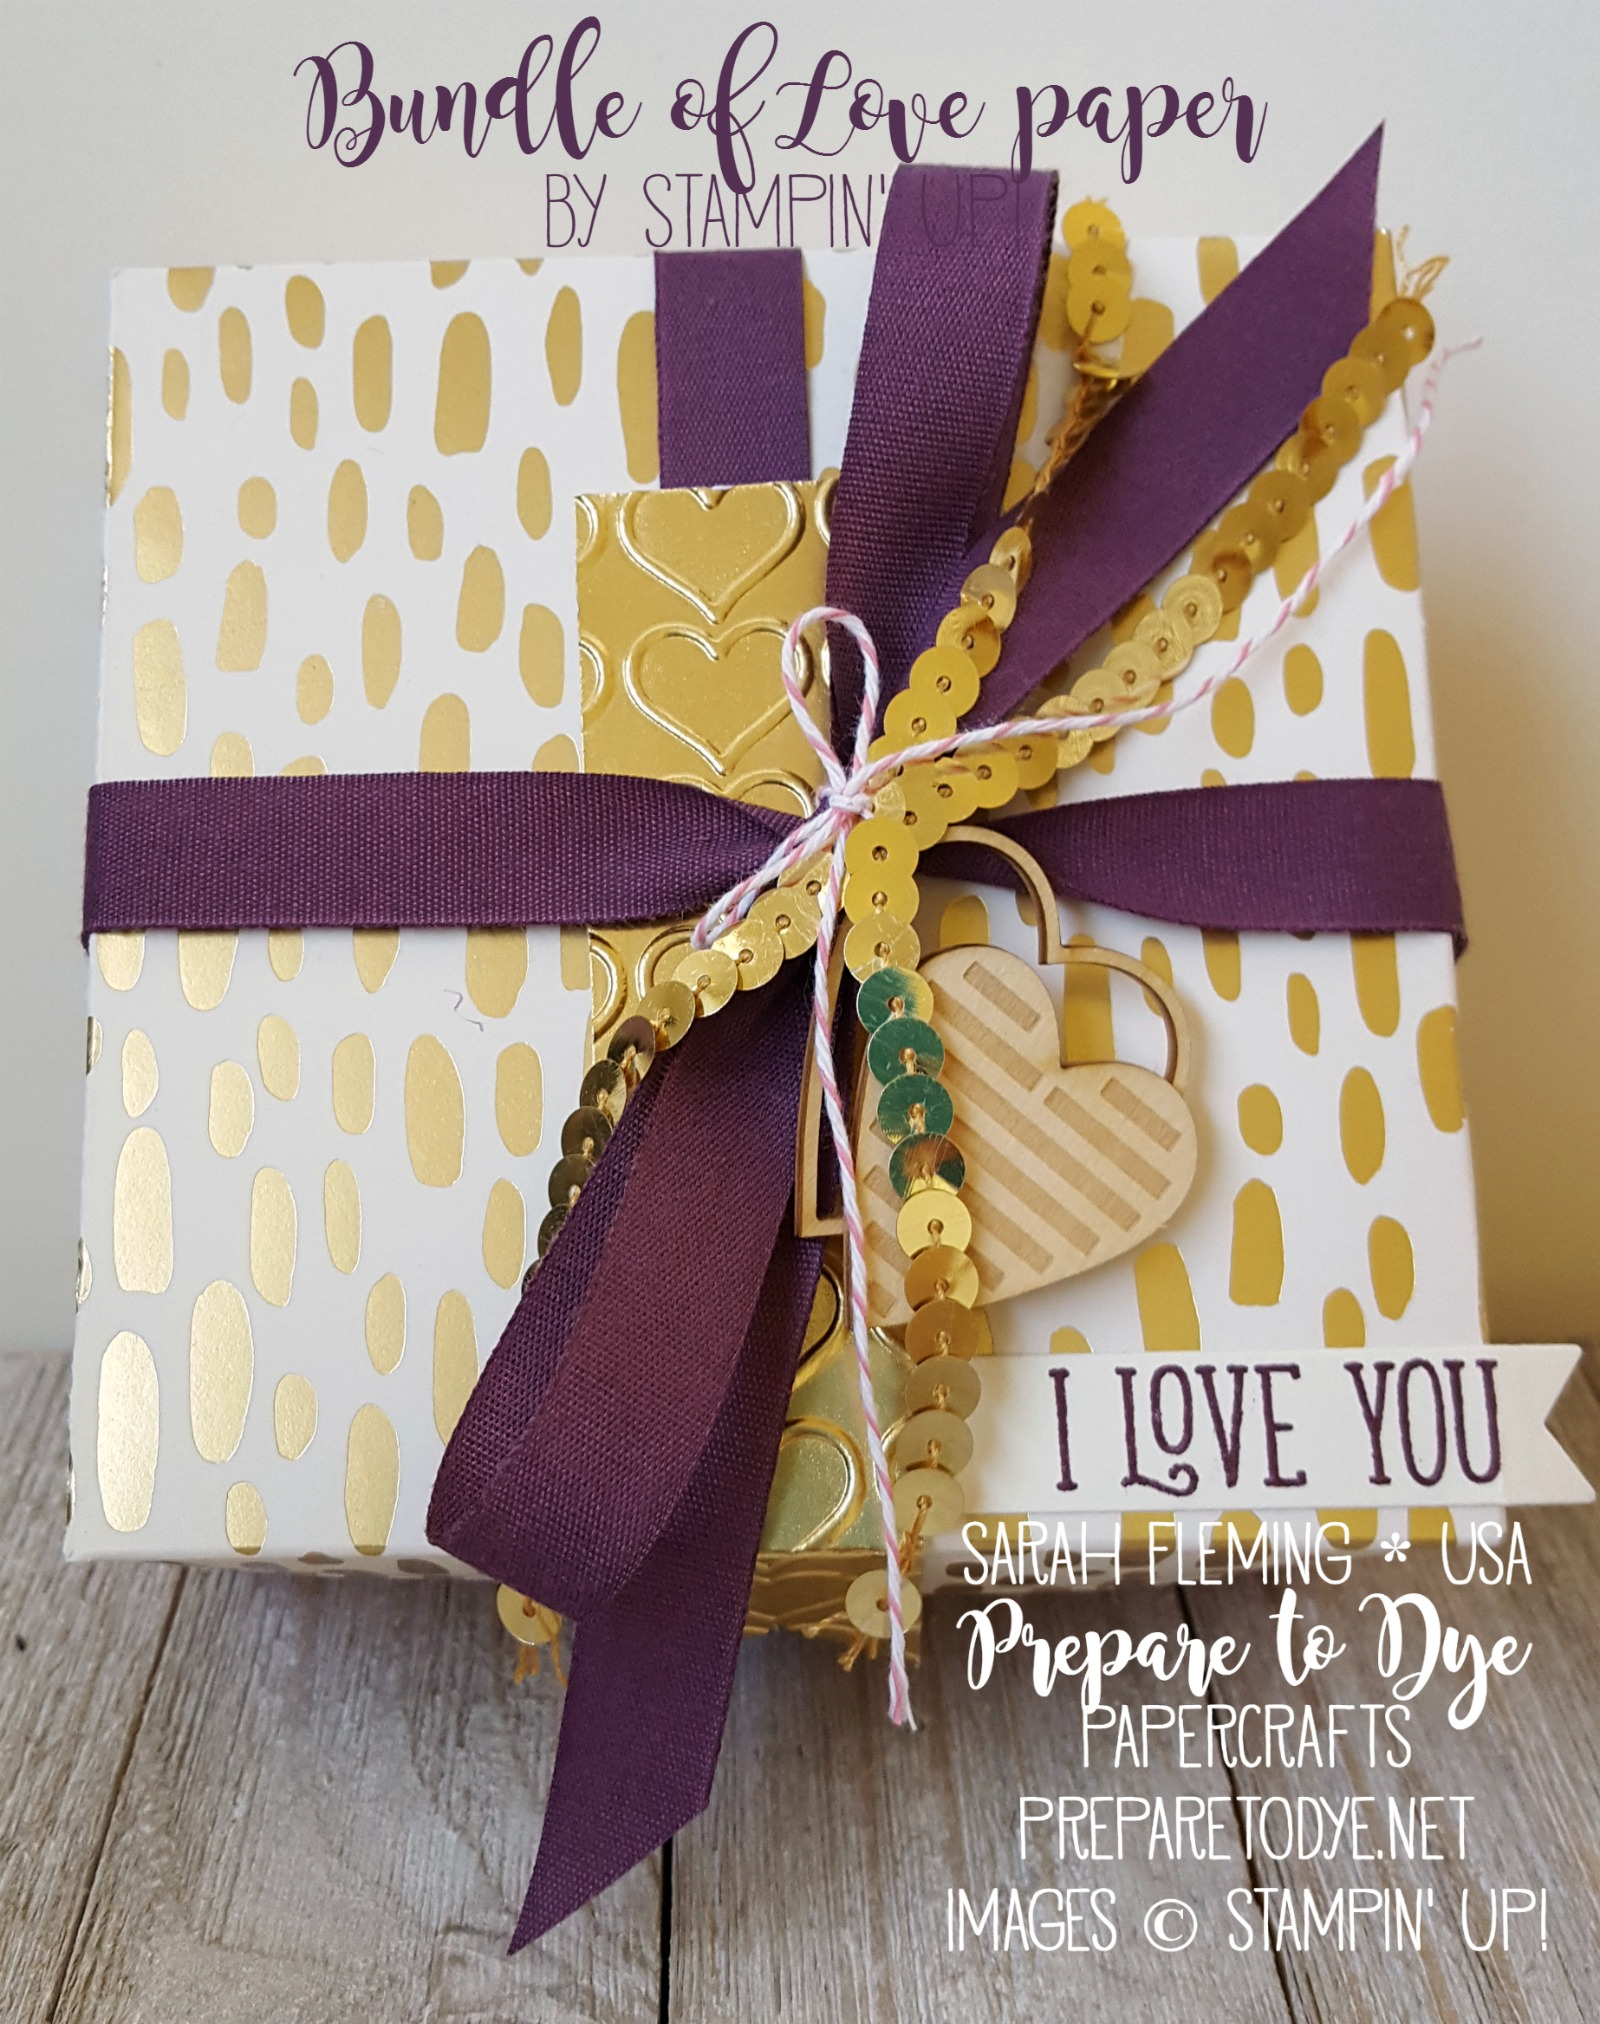 Stampin' Up! Bundle of Love specialty paper handmade gift box w/ Hearts & Stars Elements & In Color ribbon - Sarah Fleming - Prepare to Dye Papercrafts